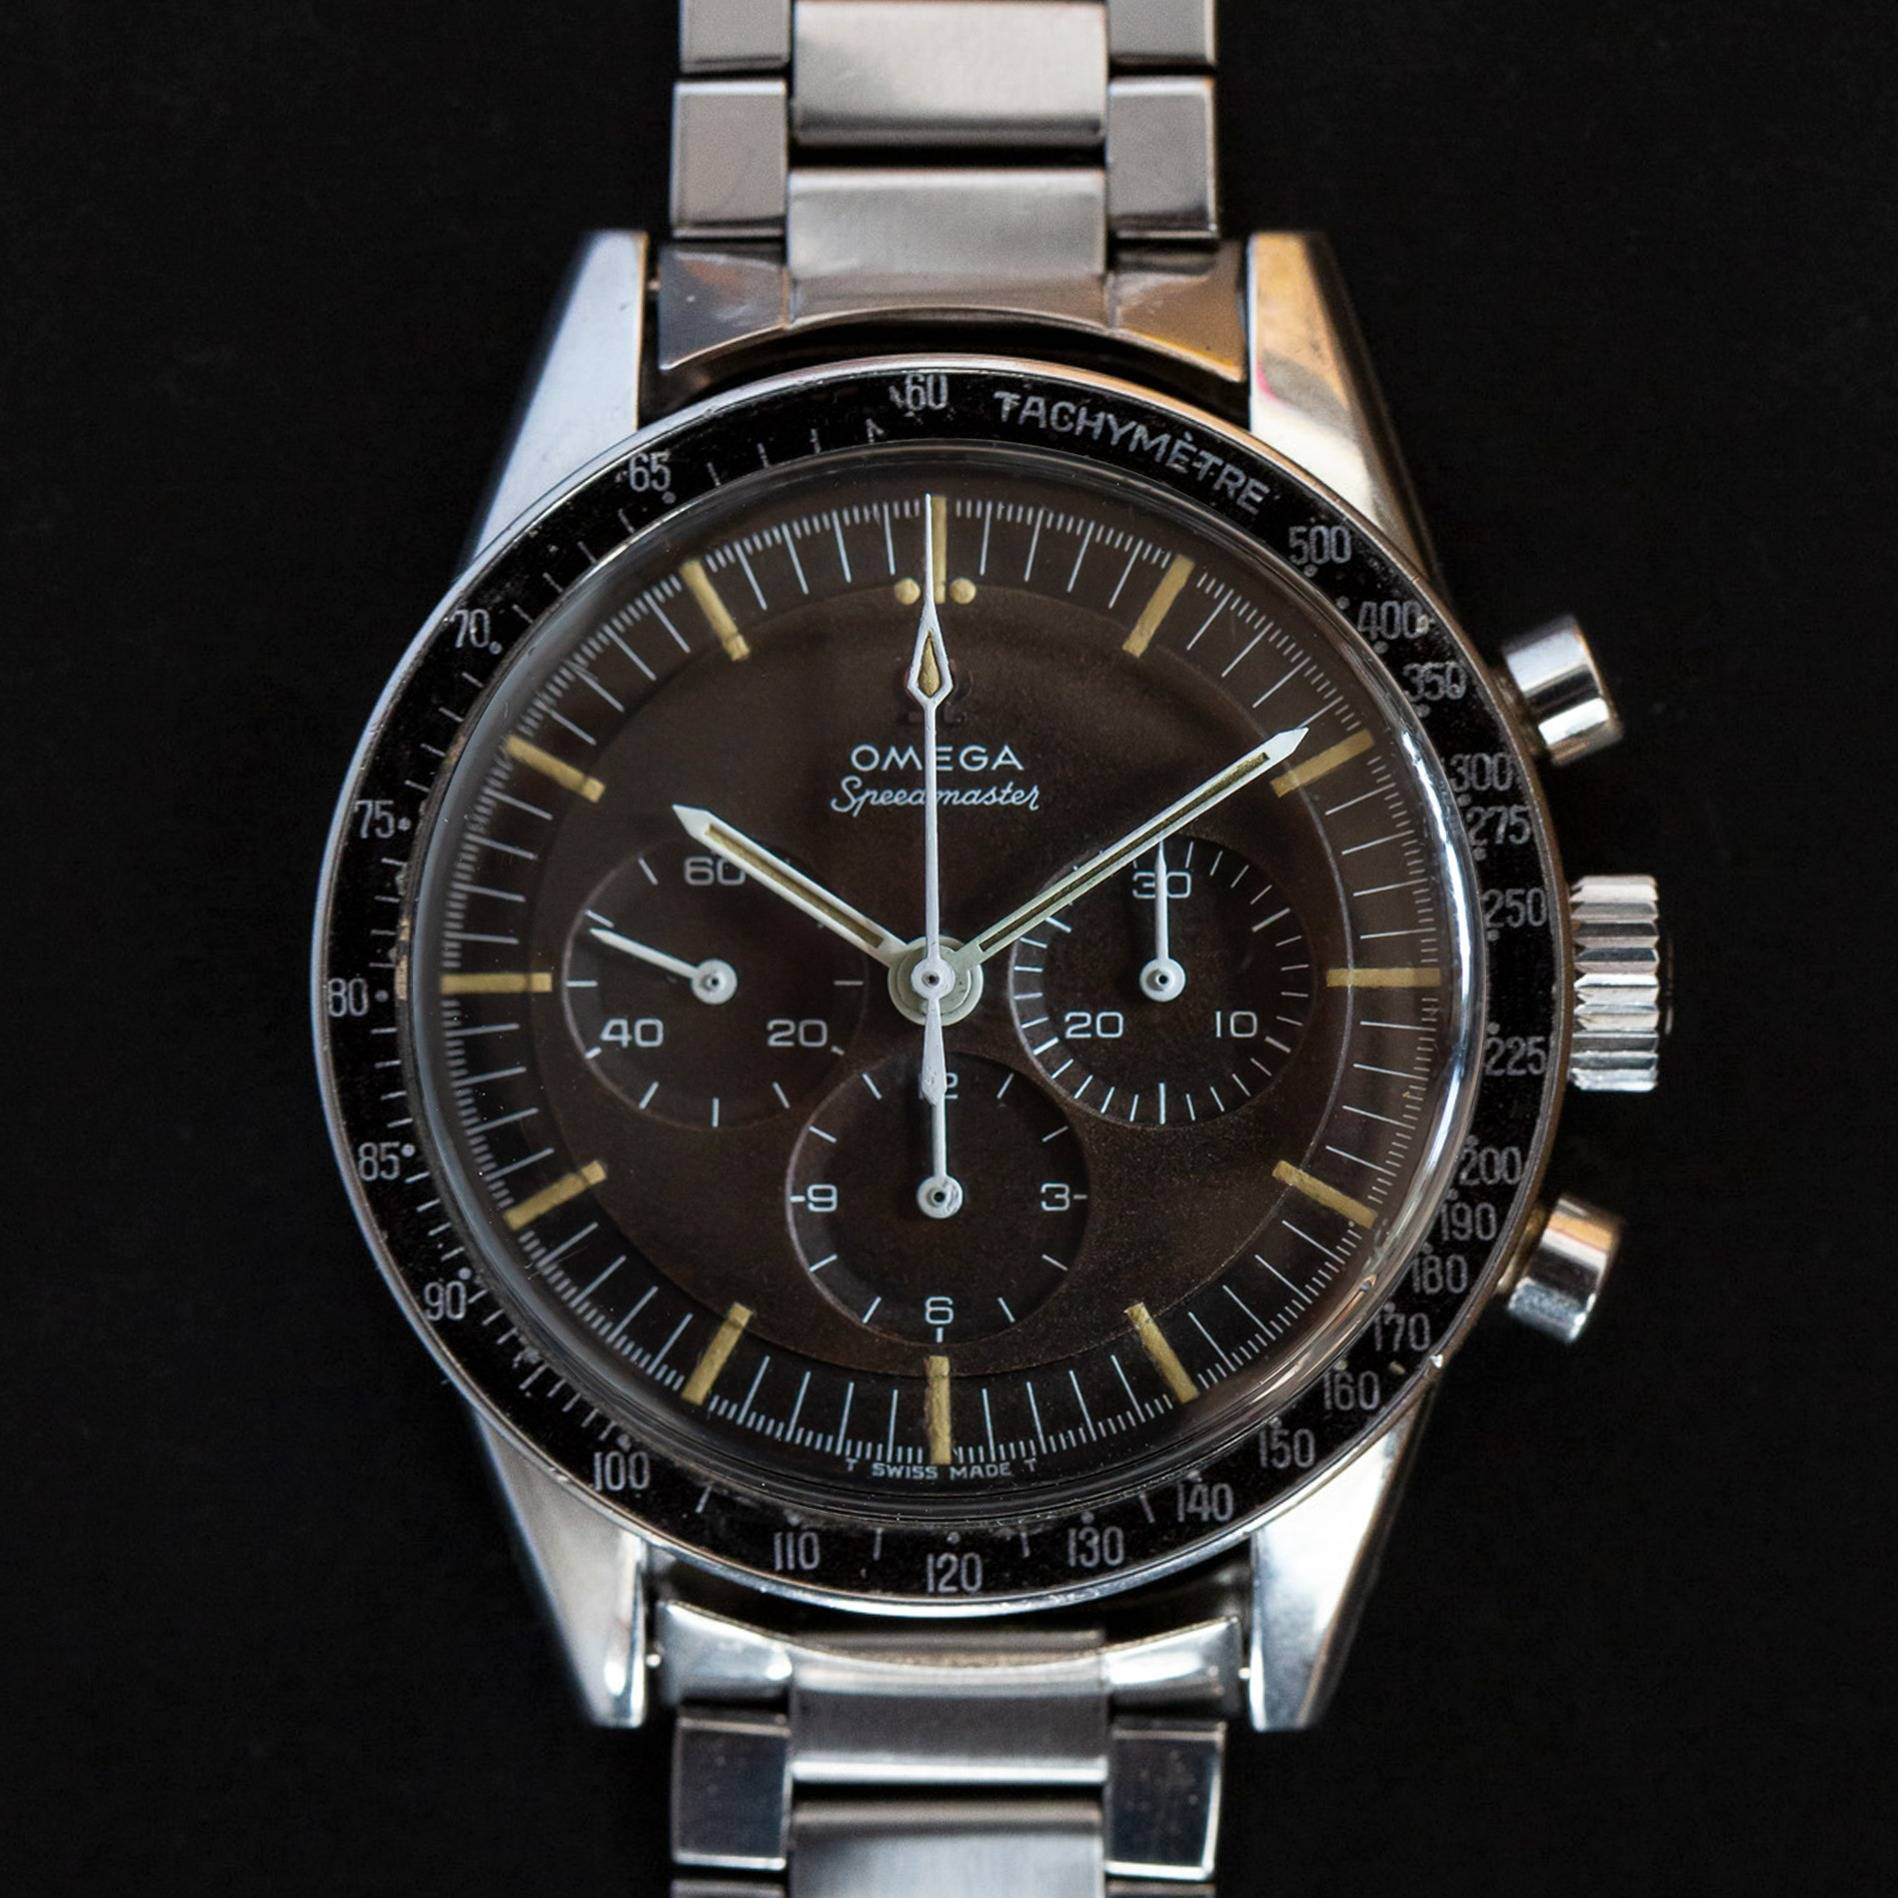 Omega Speedmaster 321 / ST 105.003-65 'Ed White' Tropical Dial-1